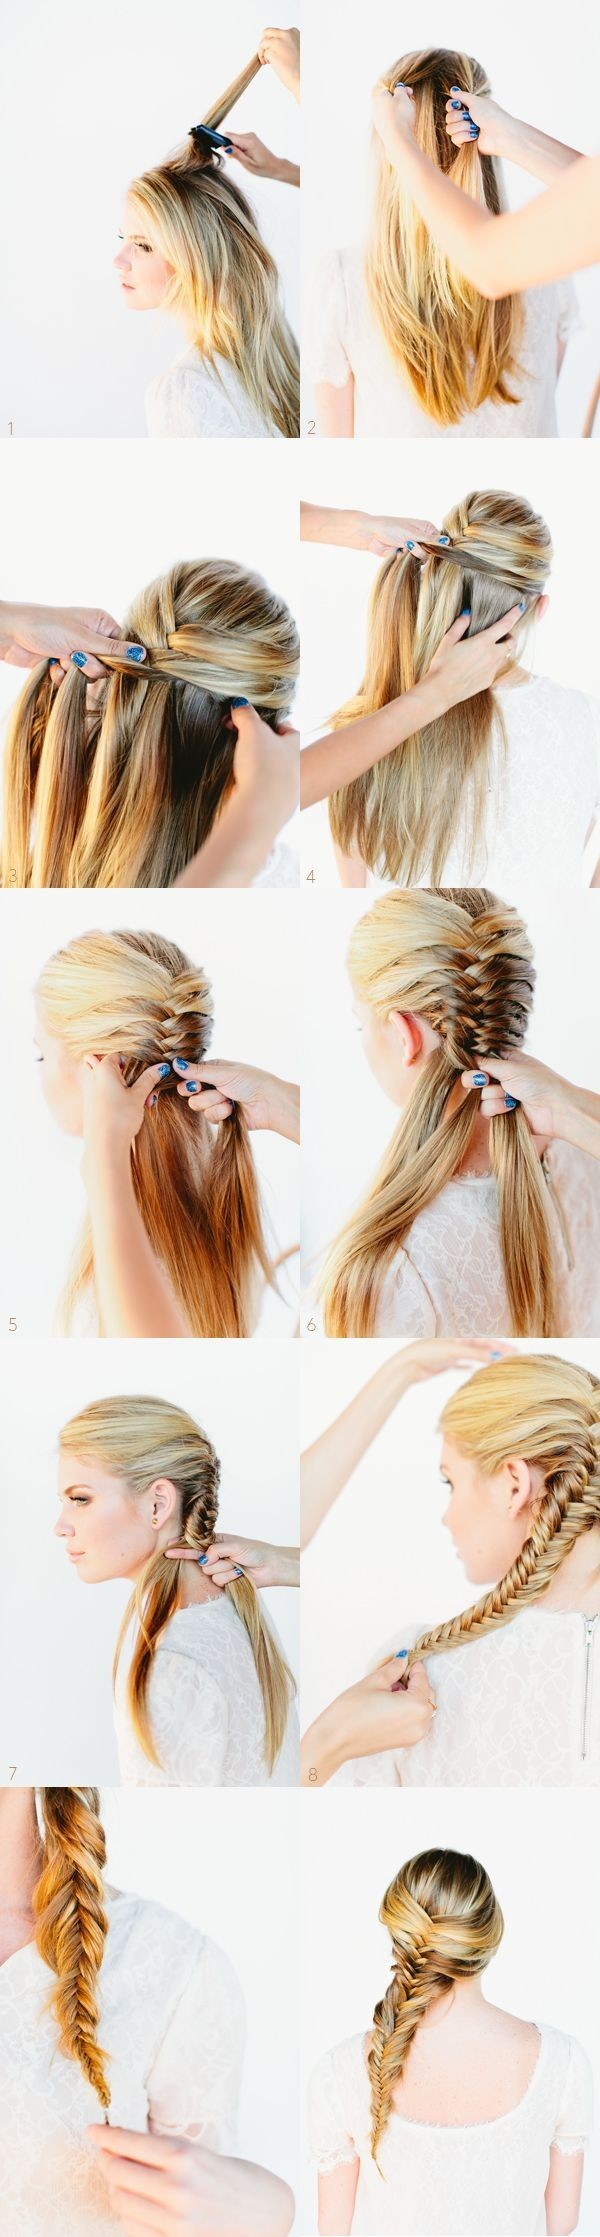 Braided Hairstyles Ideas Messy Side Braids Tutorial